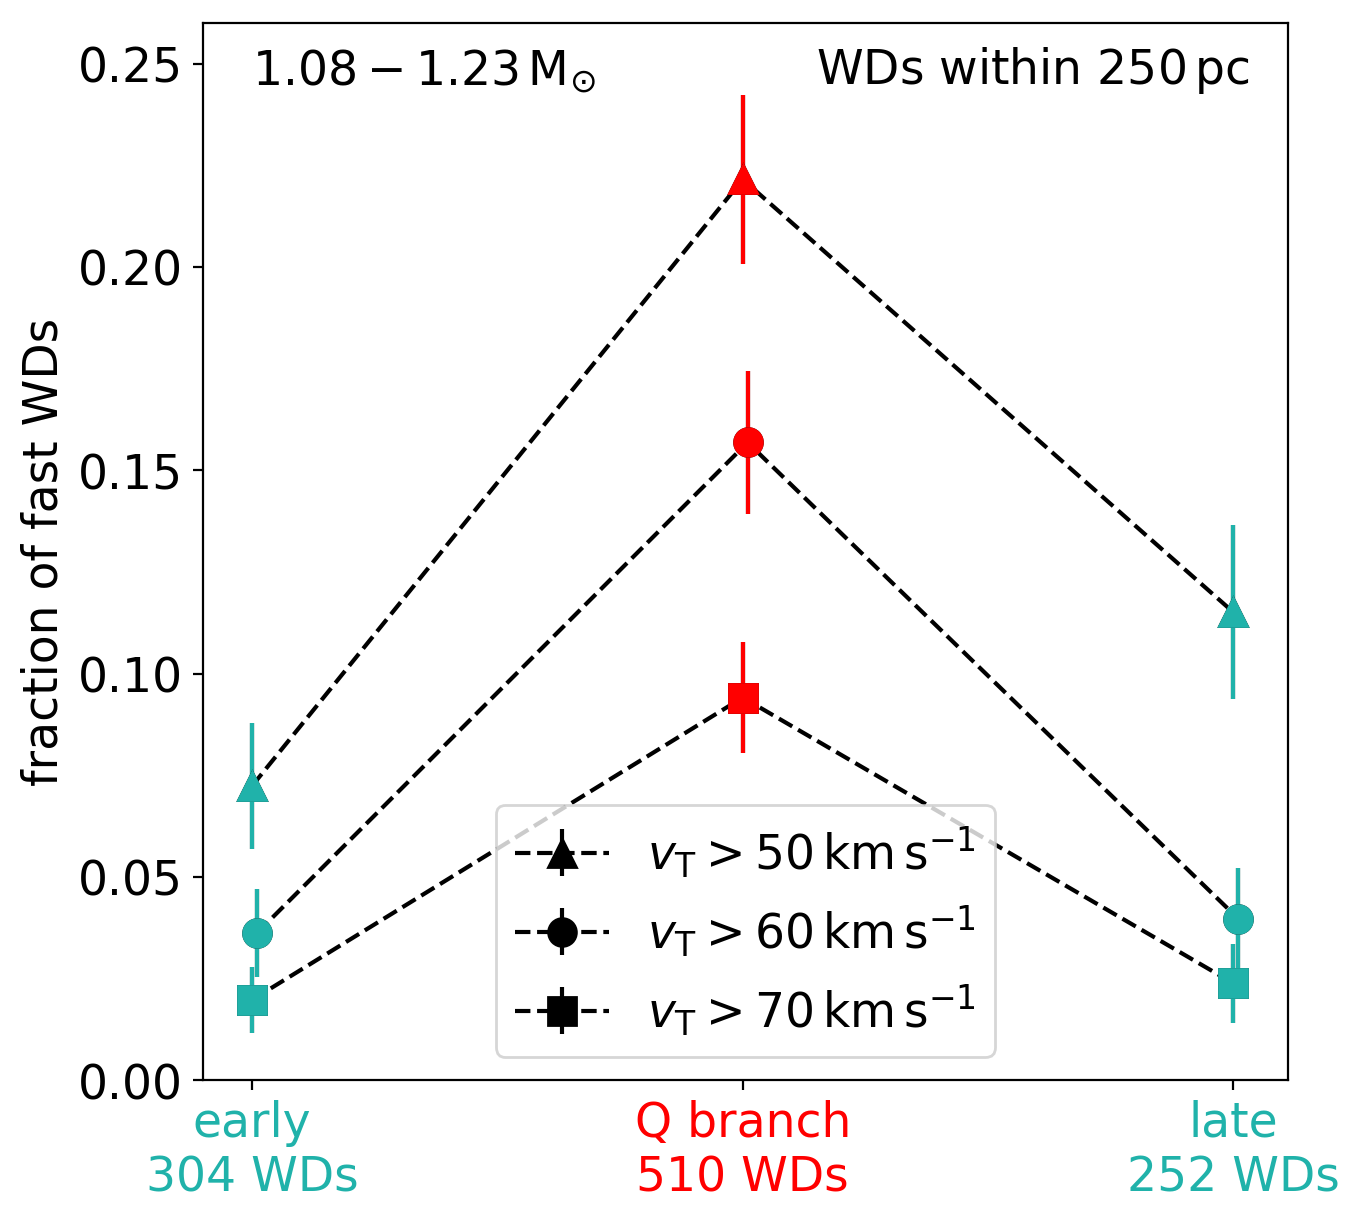 The fraction of fast white dwarfs with a variety of velocity cuts (